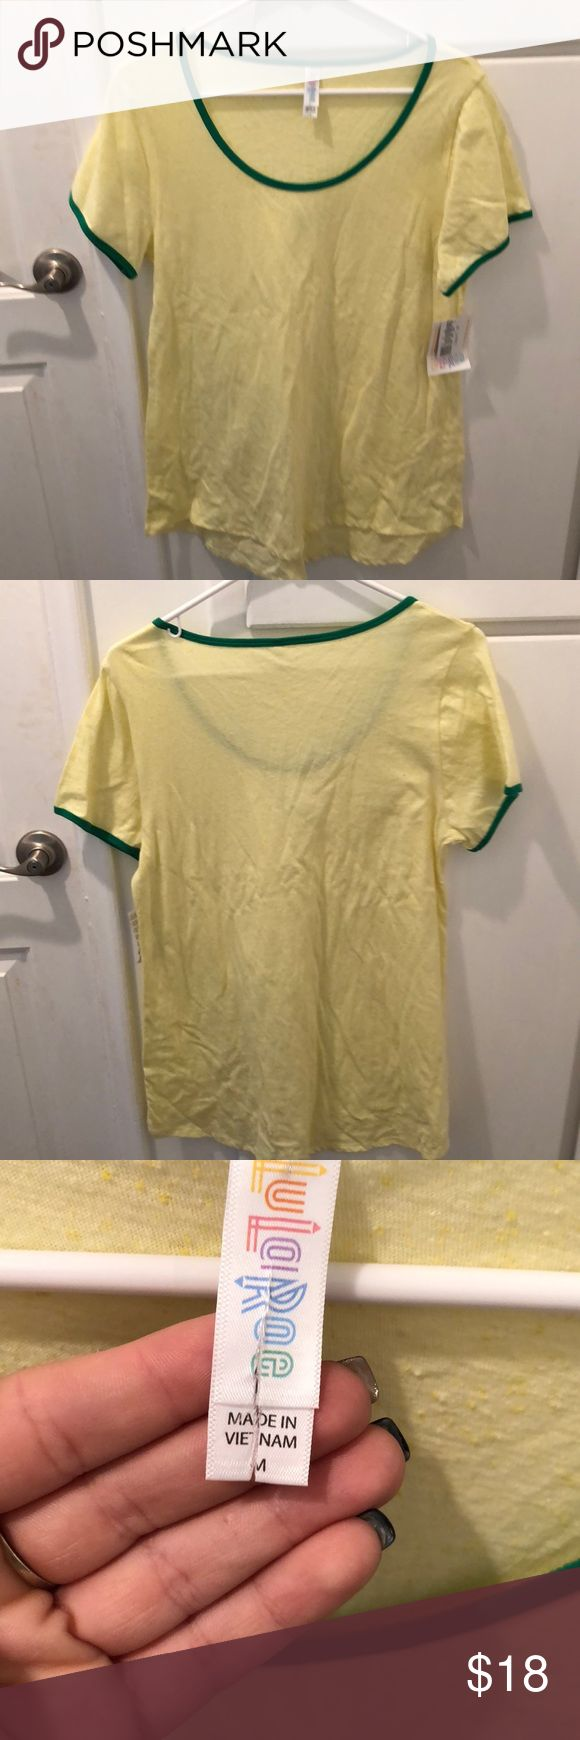 Lularoe classic T New with tags . Size medium . Lularoe tags connected to shirt is a bit split in half only flaw . LuLaRoe Tops Tees - Short Sleeve